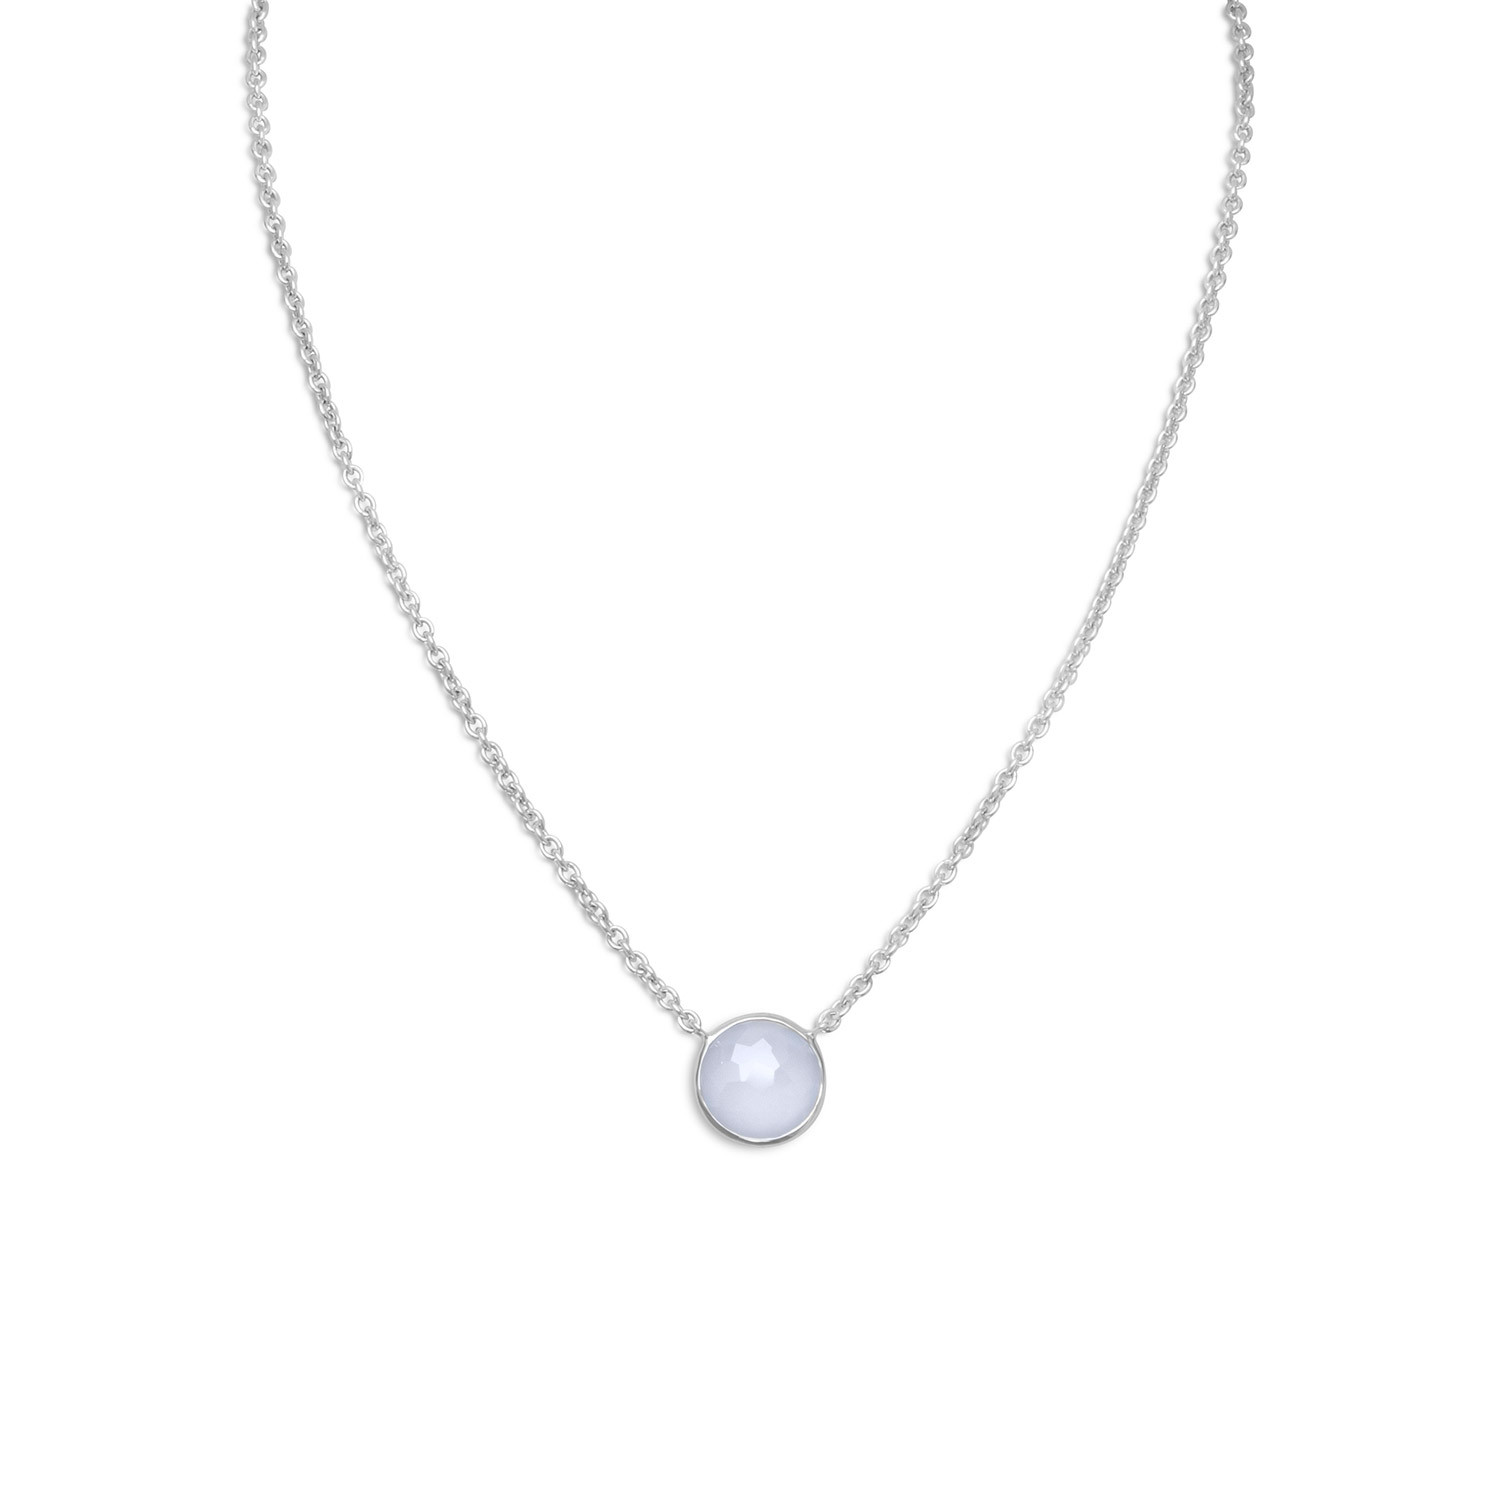 Blue Dyed Chalcedony Necklace Round Shape Rhodium on Sterling Silver by unknown